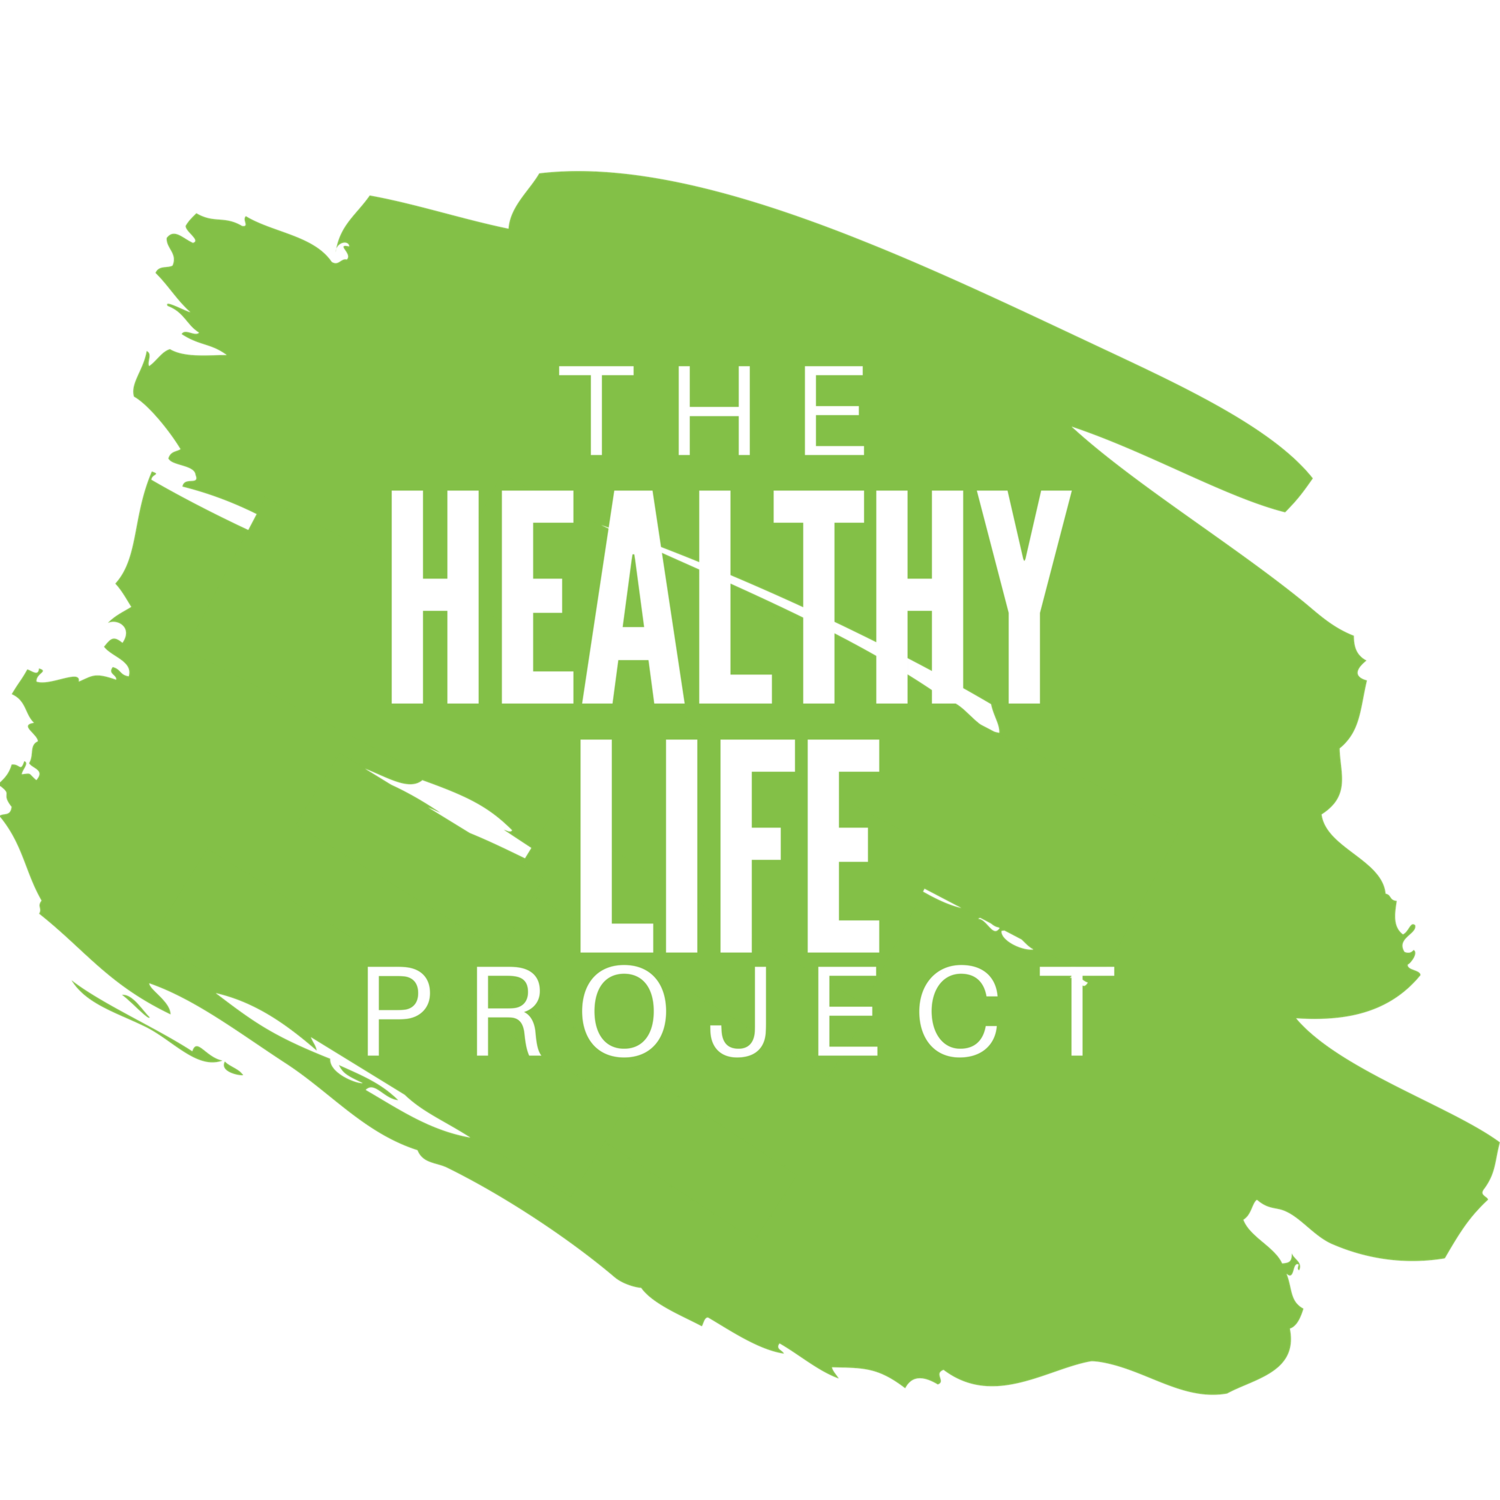 The Healthy Life Project